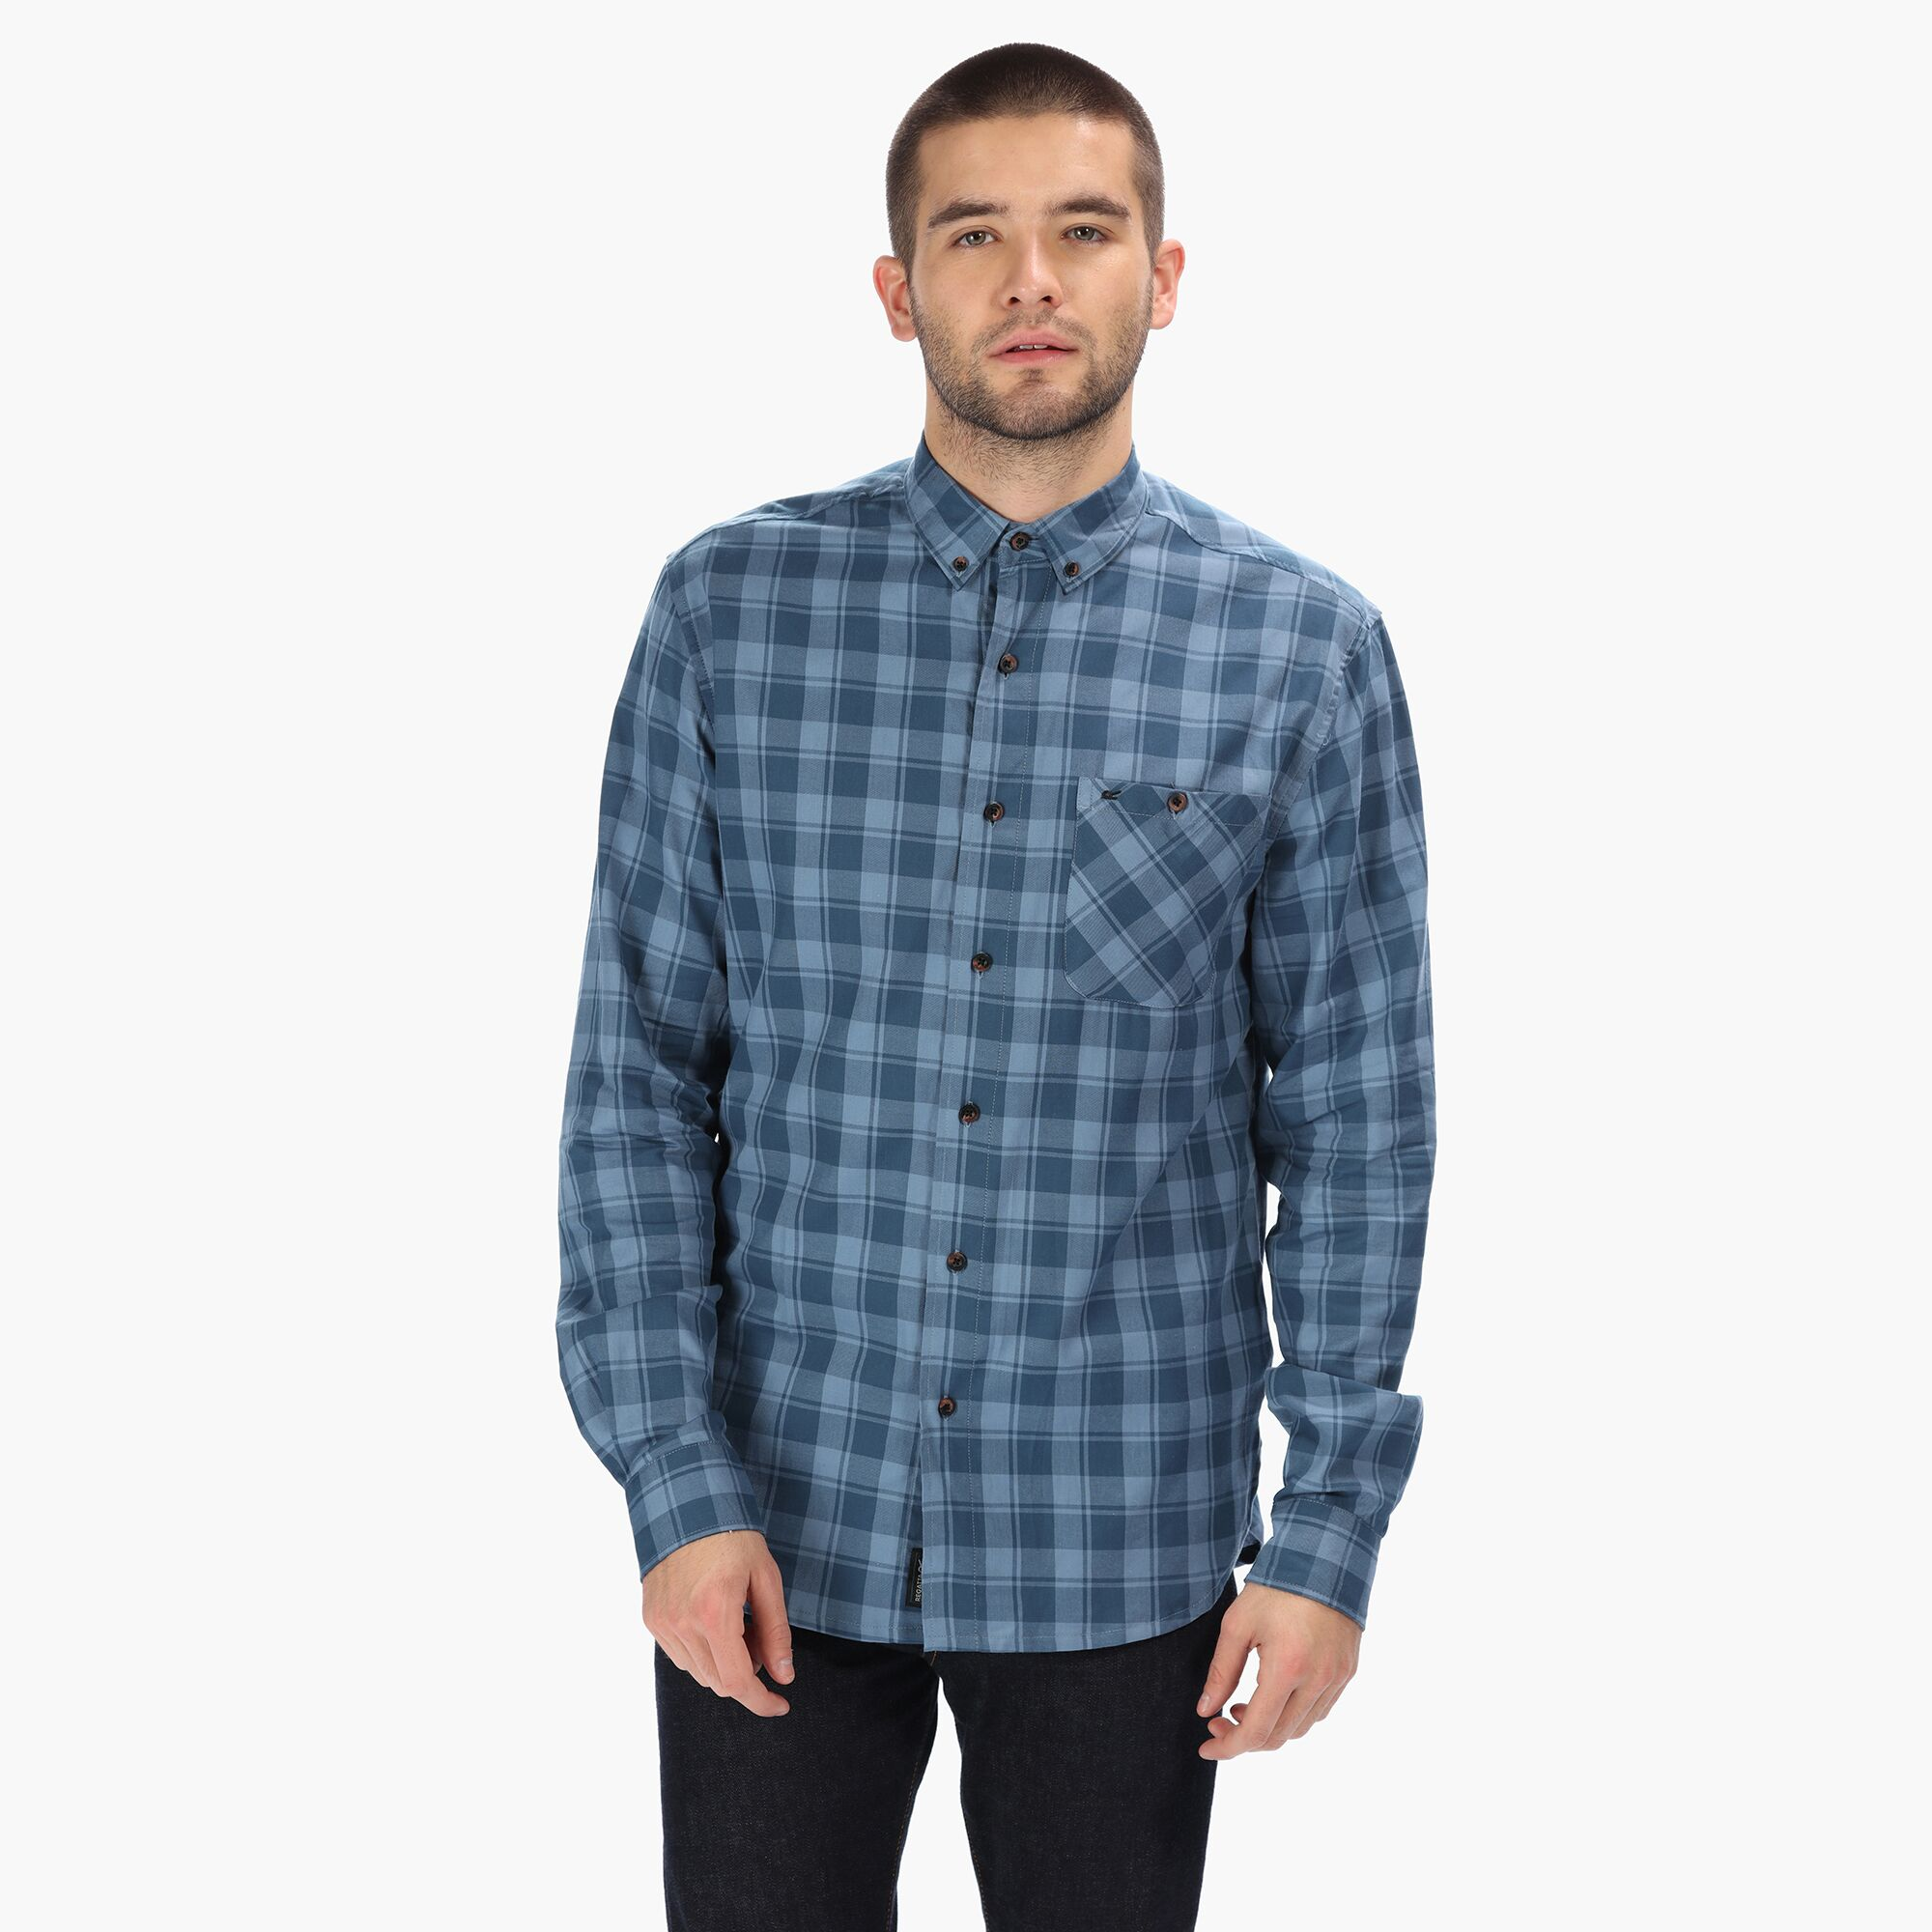 Regatta Great Outdoors Mens Lazare Long Sleeve Checked Shirt (L) (Burnt Umber/Black)